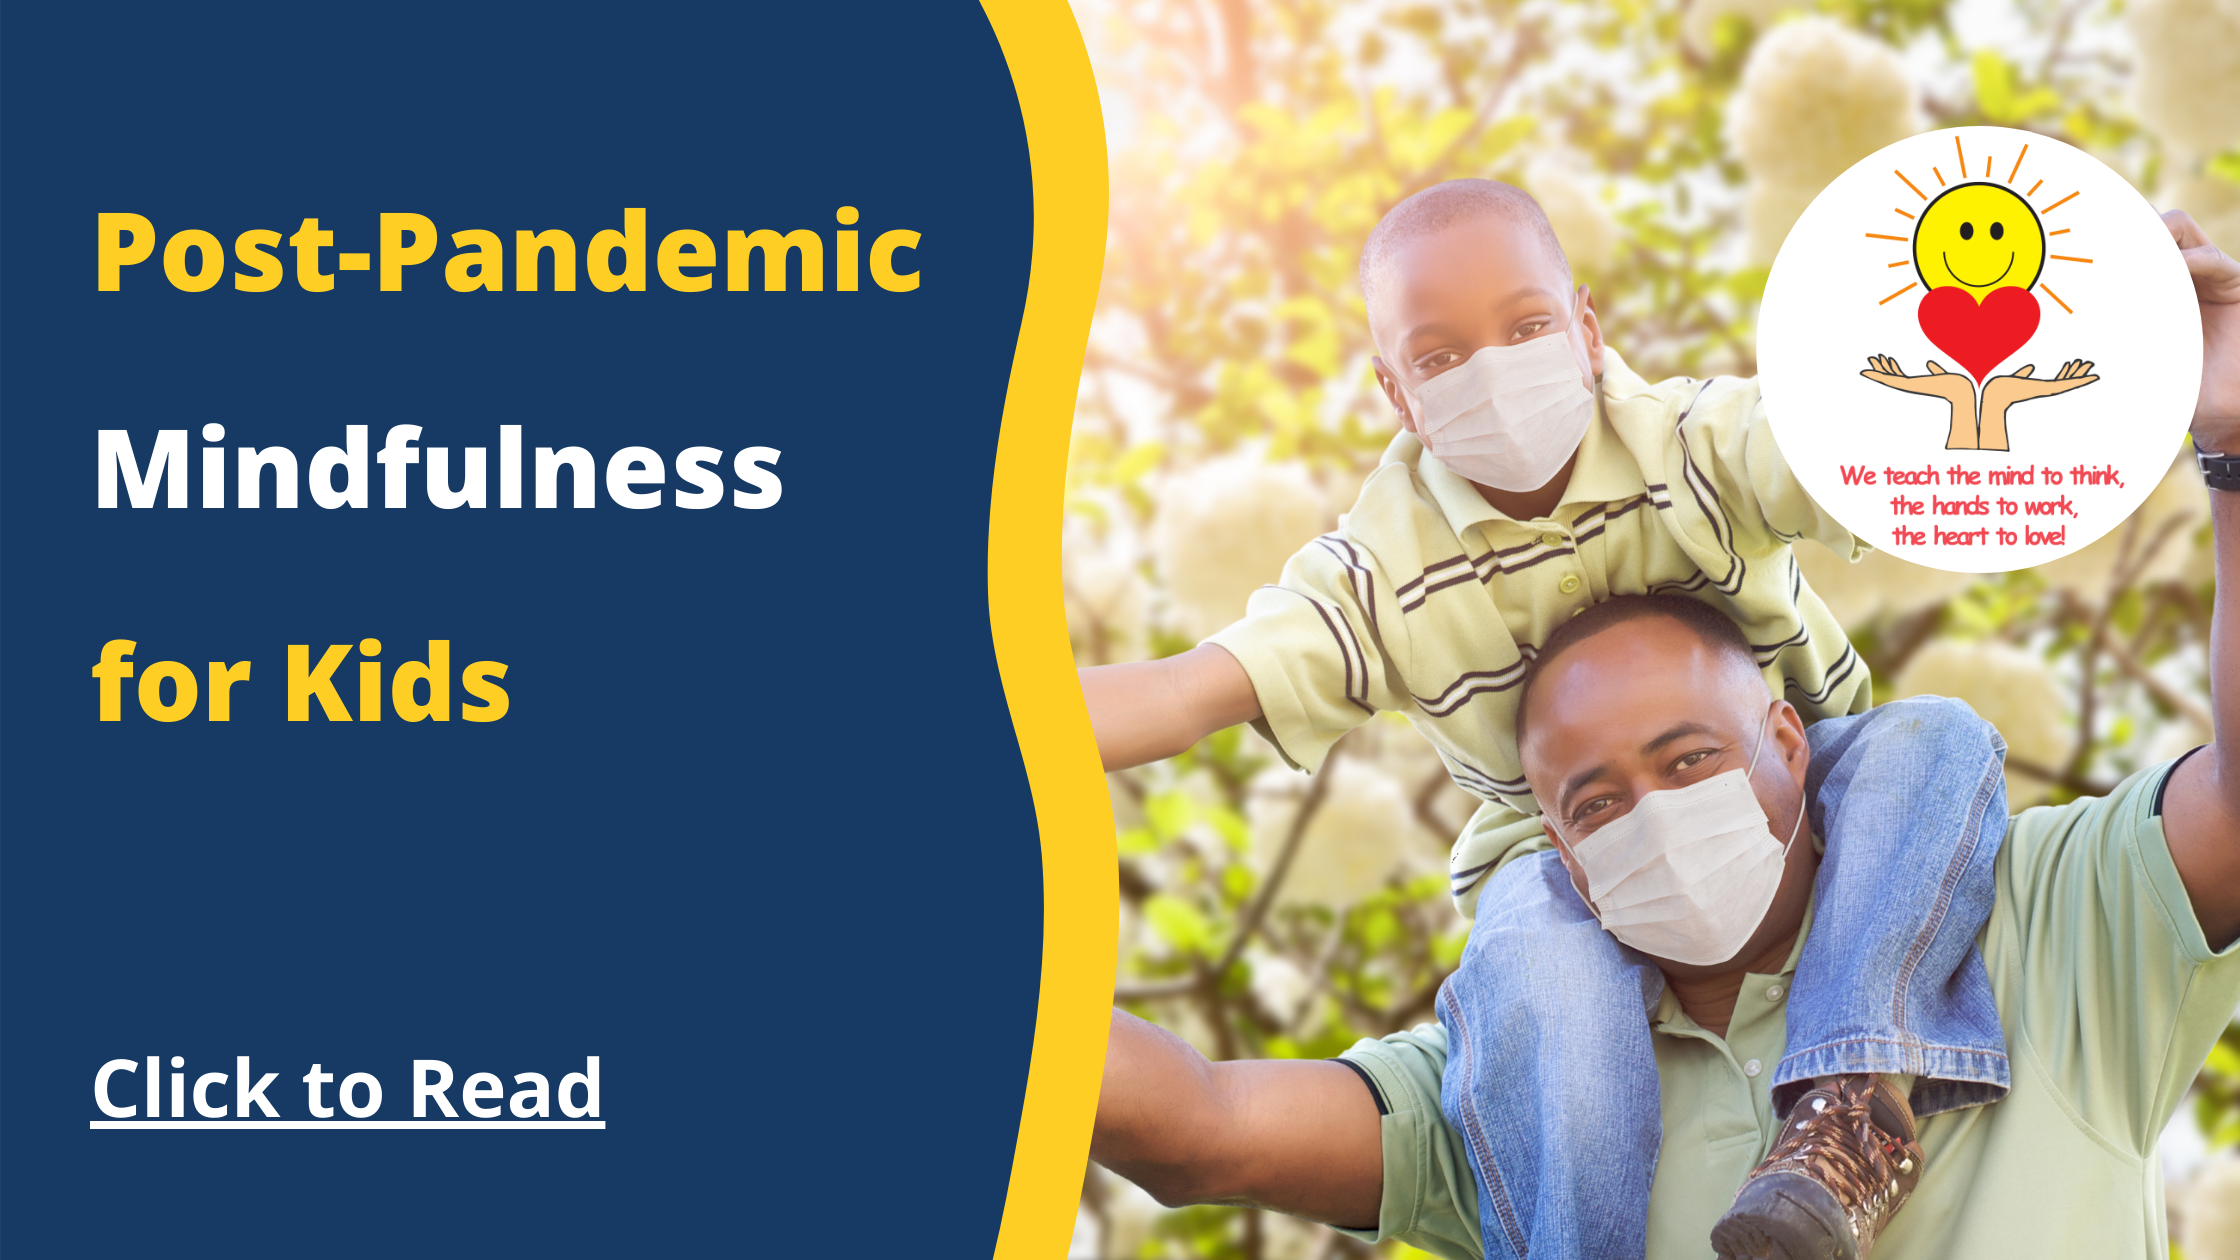 Post-Pandemic Mindfulness for Kids